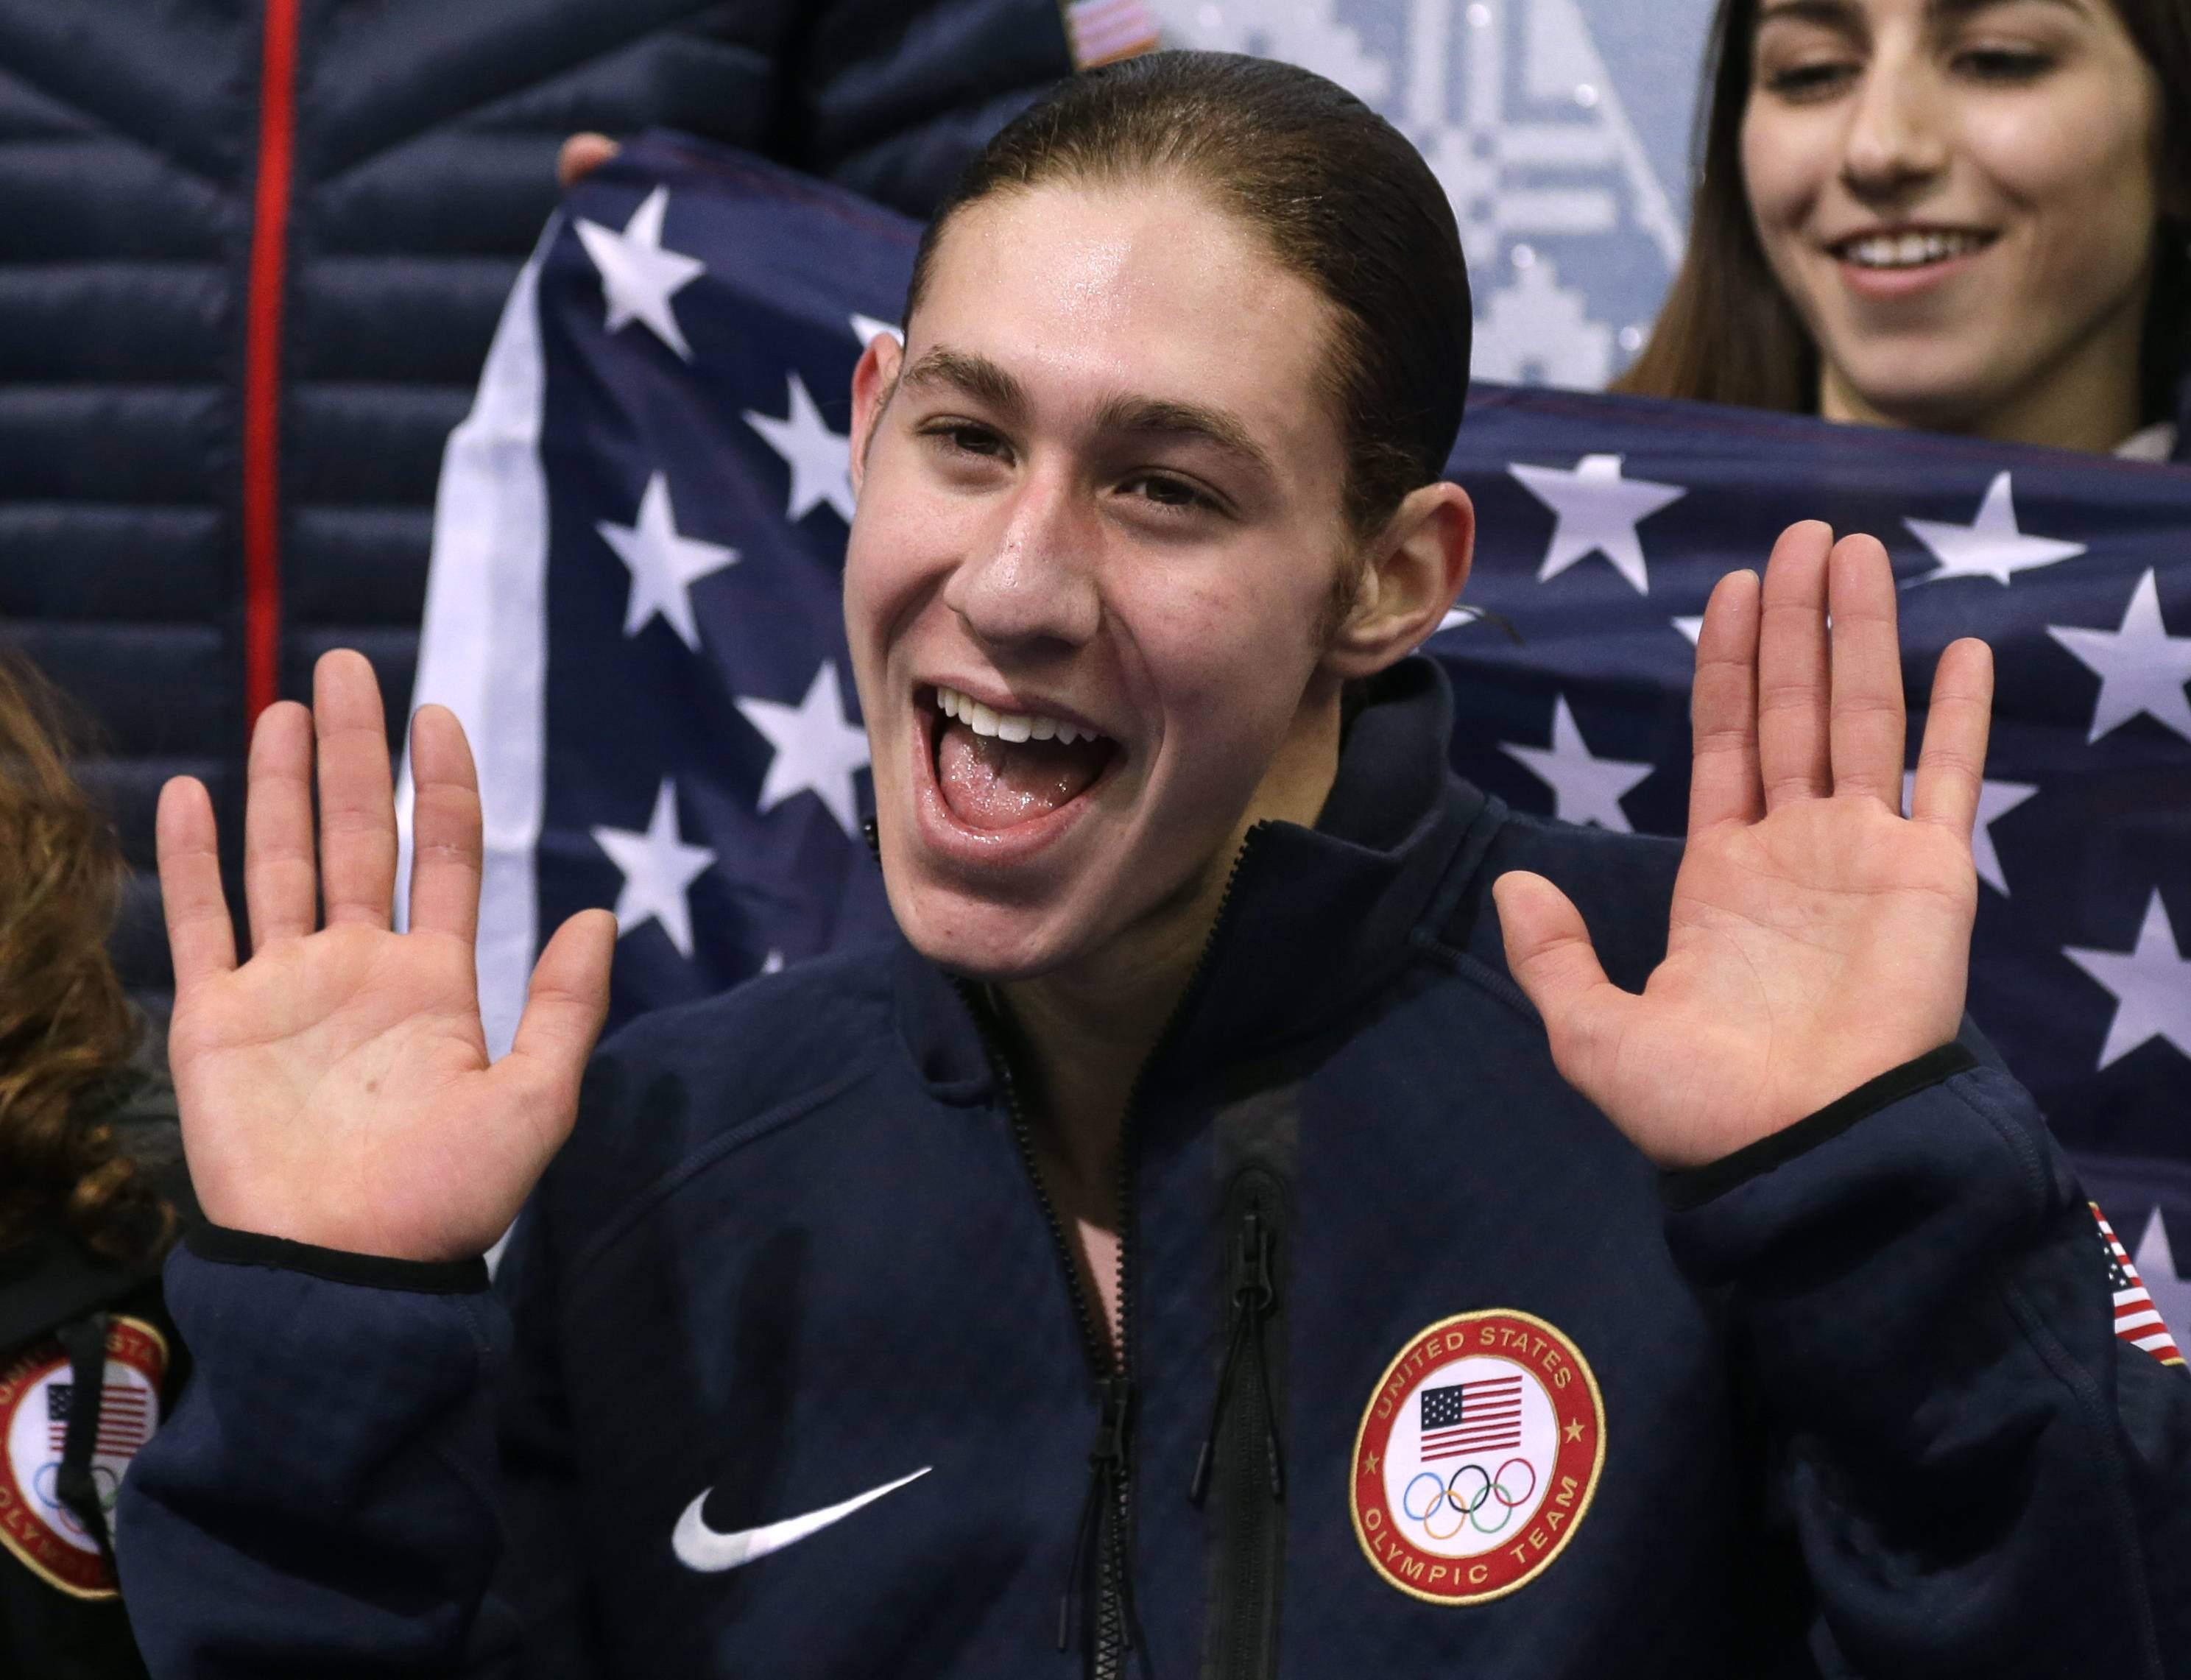 Jason Brown of the United States waves to spectators after competing in the men's team free skate figure skating competition Sunday at the Iceberg Skating Palace during the 2014 Winter Olympics in Sochi, Russia.